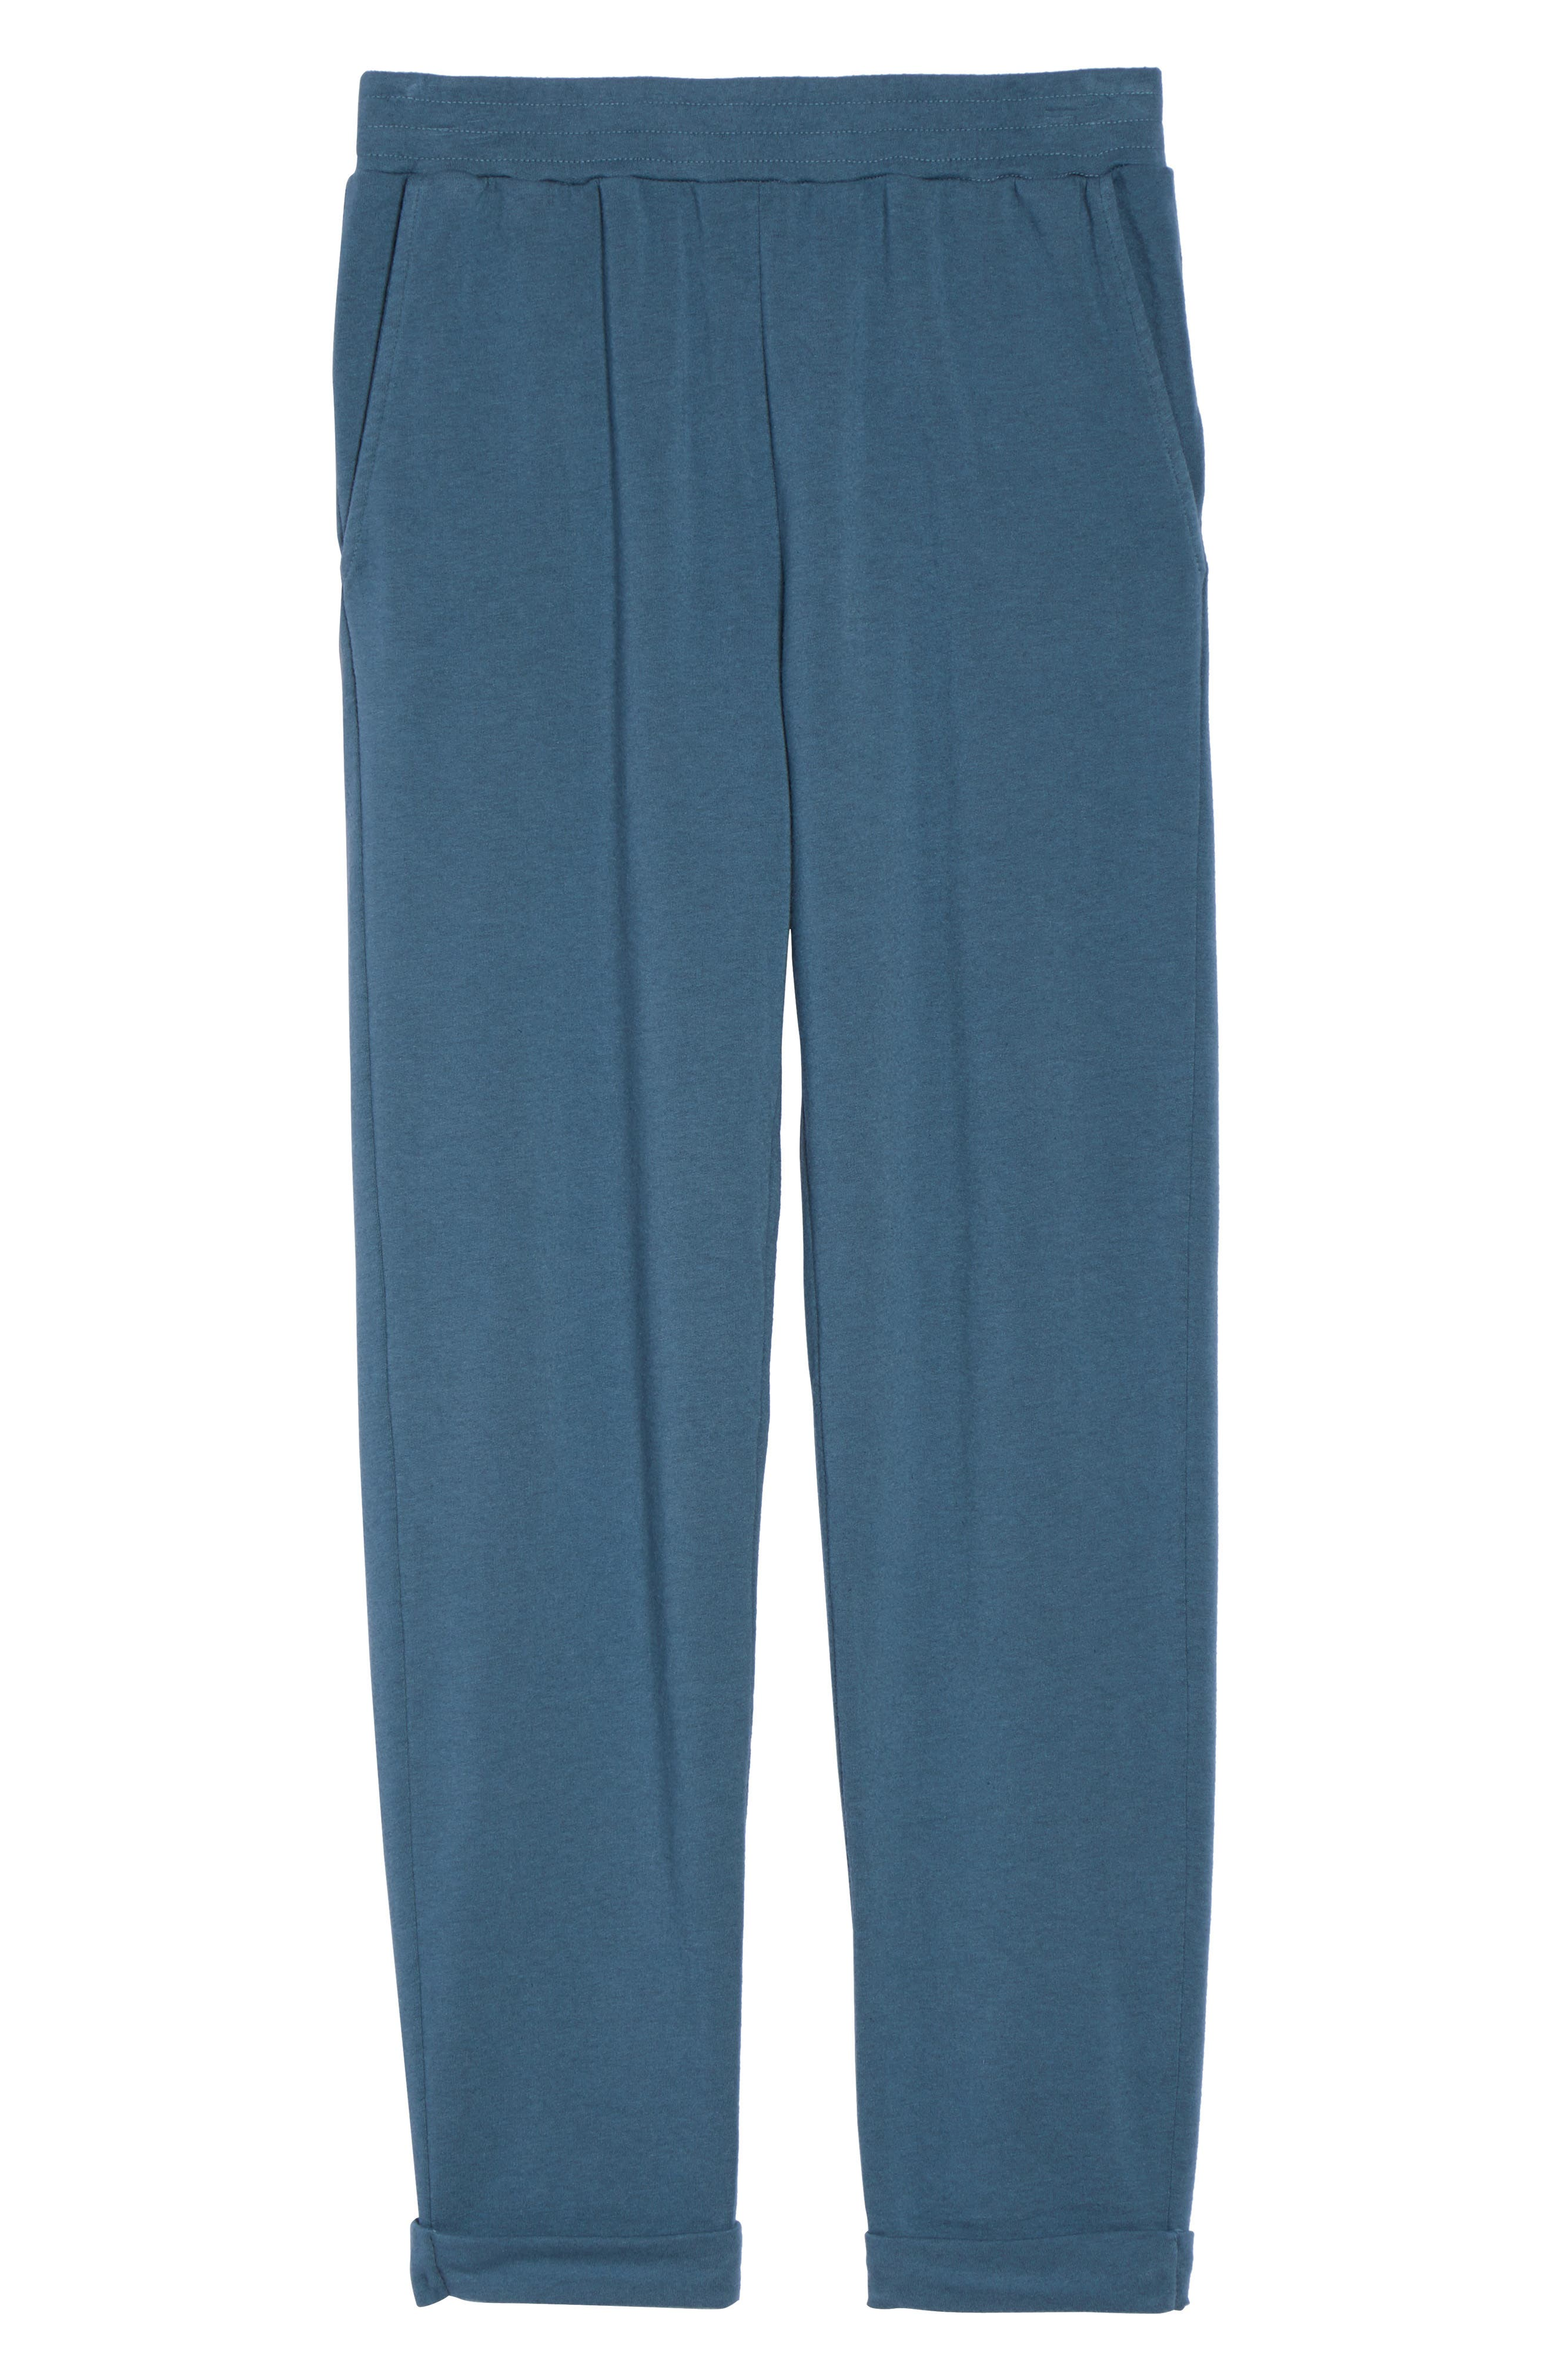 French Terry Sweatpants,                             Alternate thumbnail 4, color,                             Royal Teal